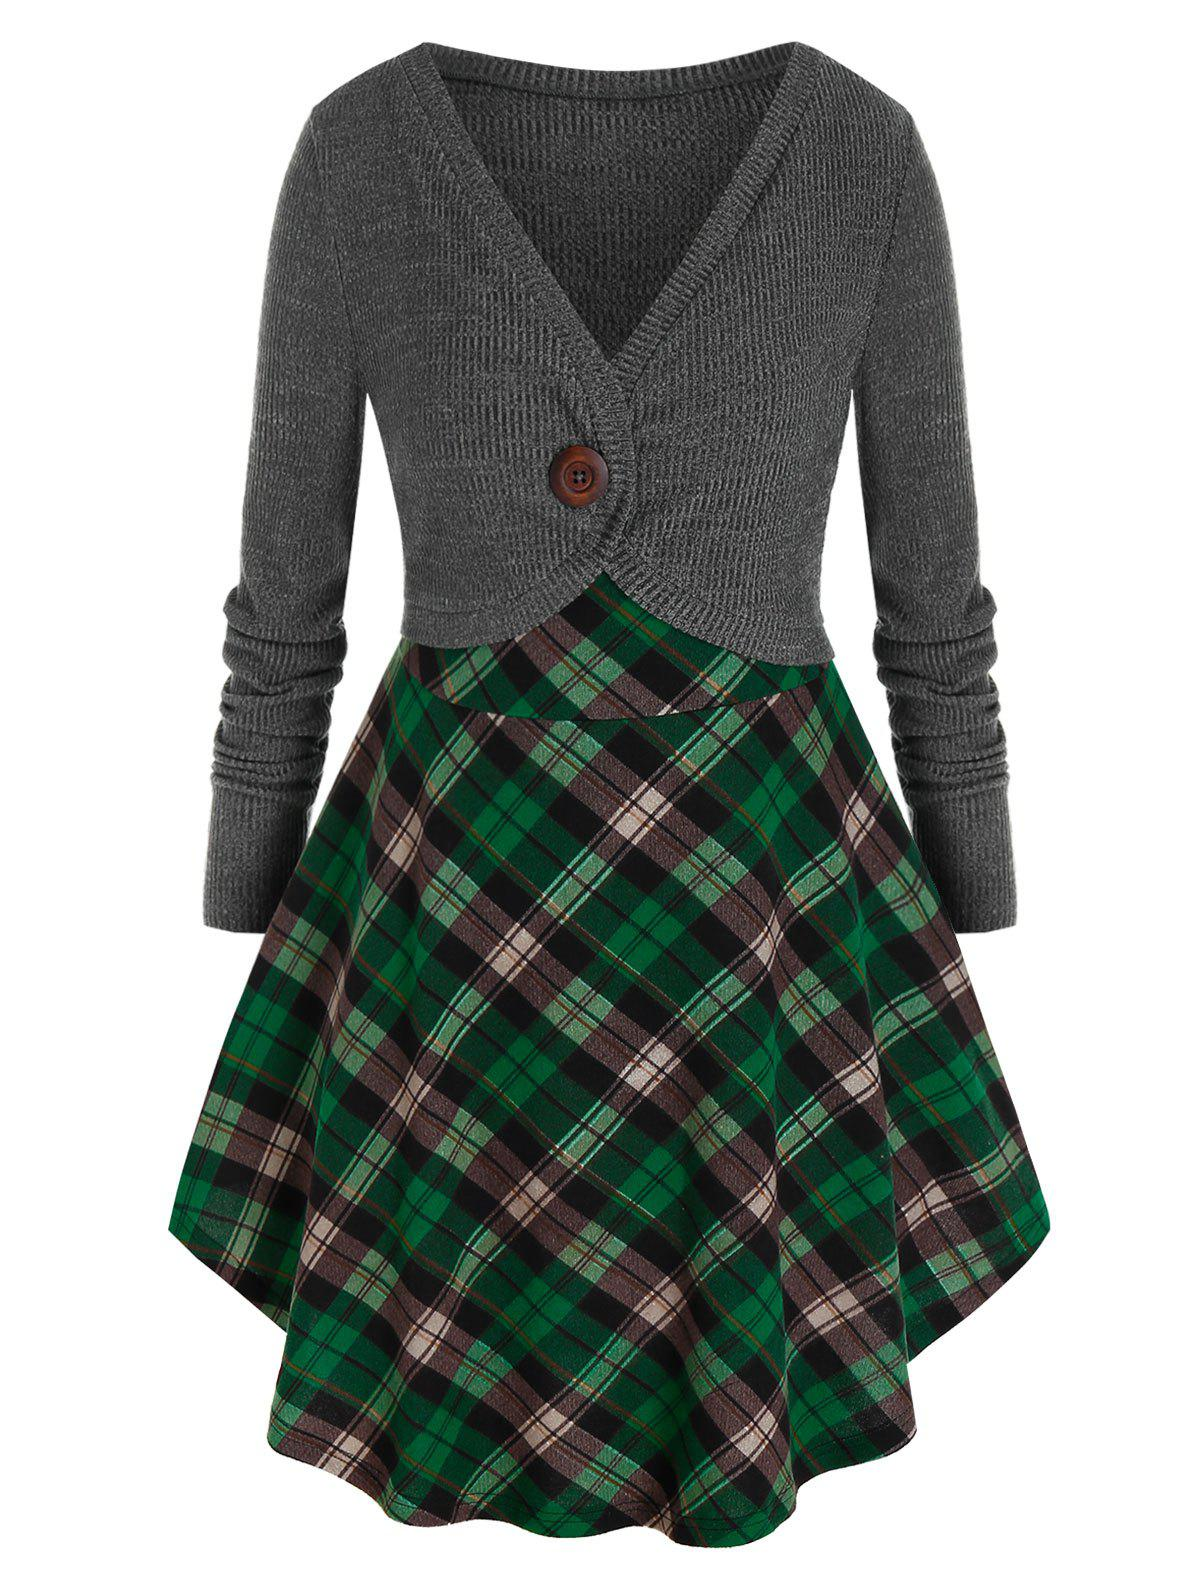 Unique Plus Size Contrast Plaid Skirted Mixed Media Tunic Sweater